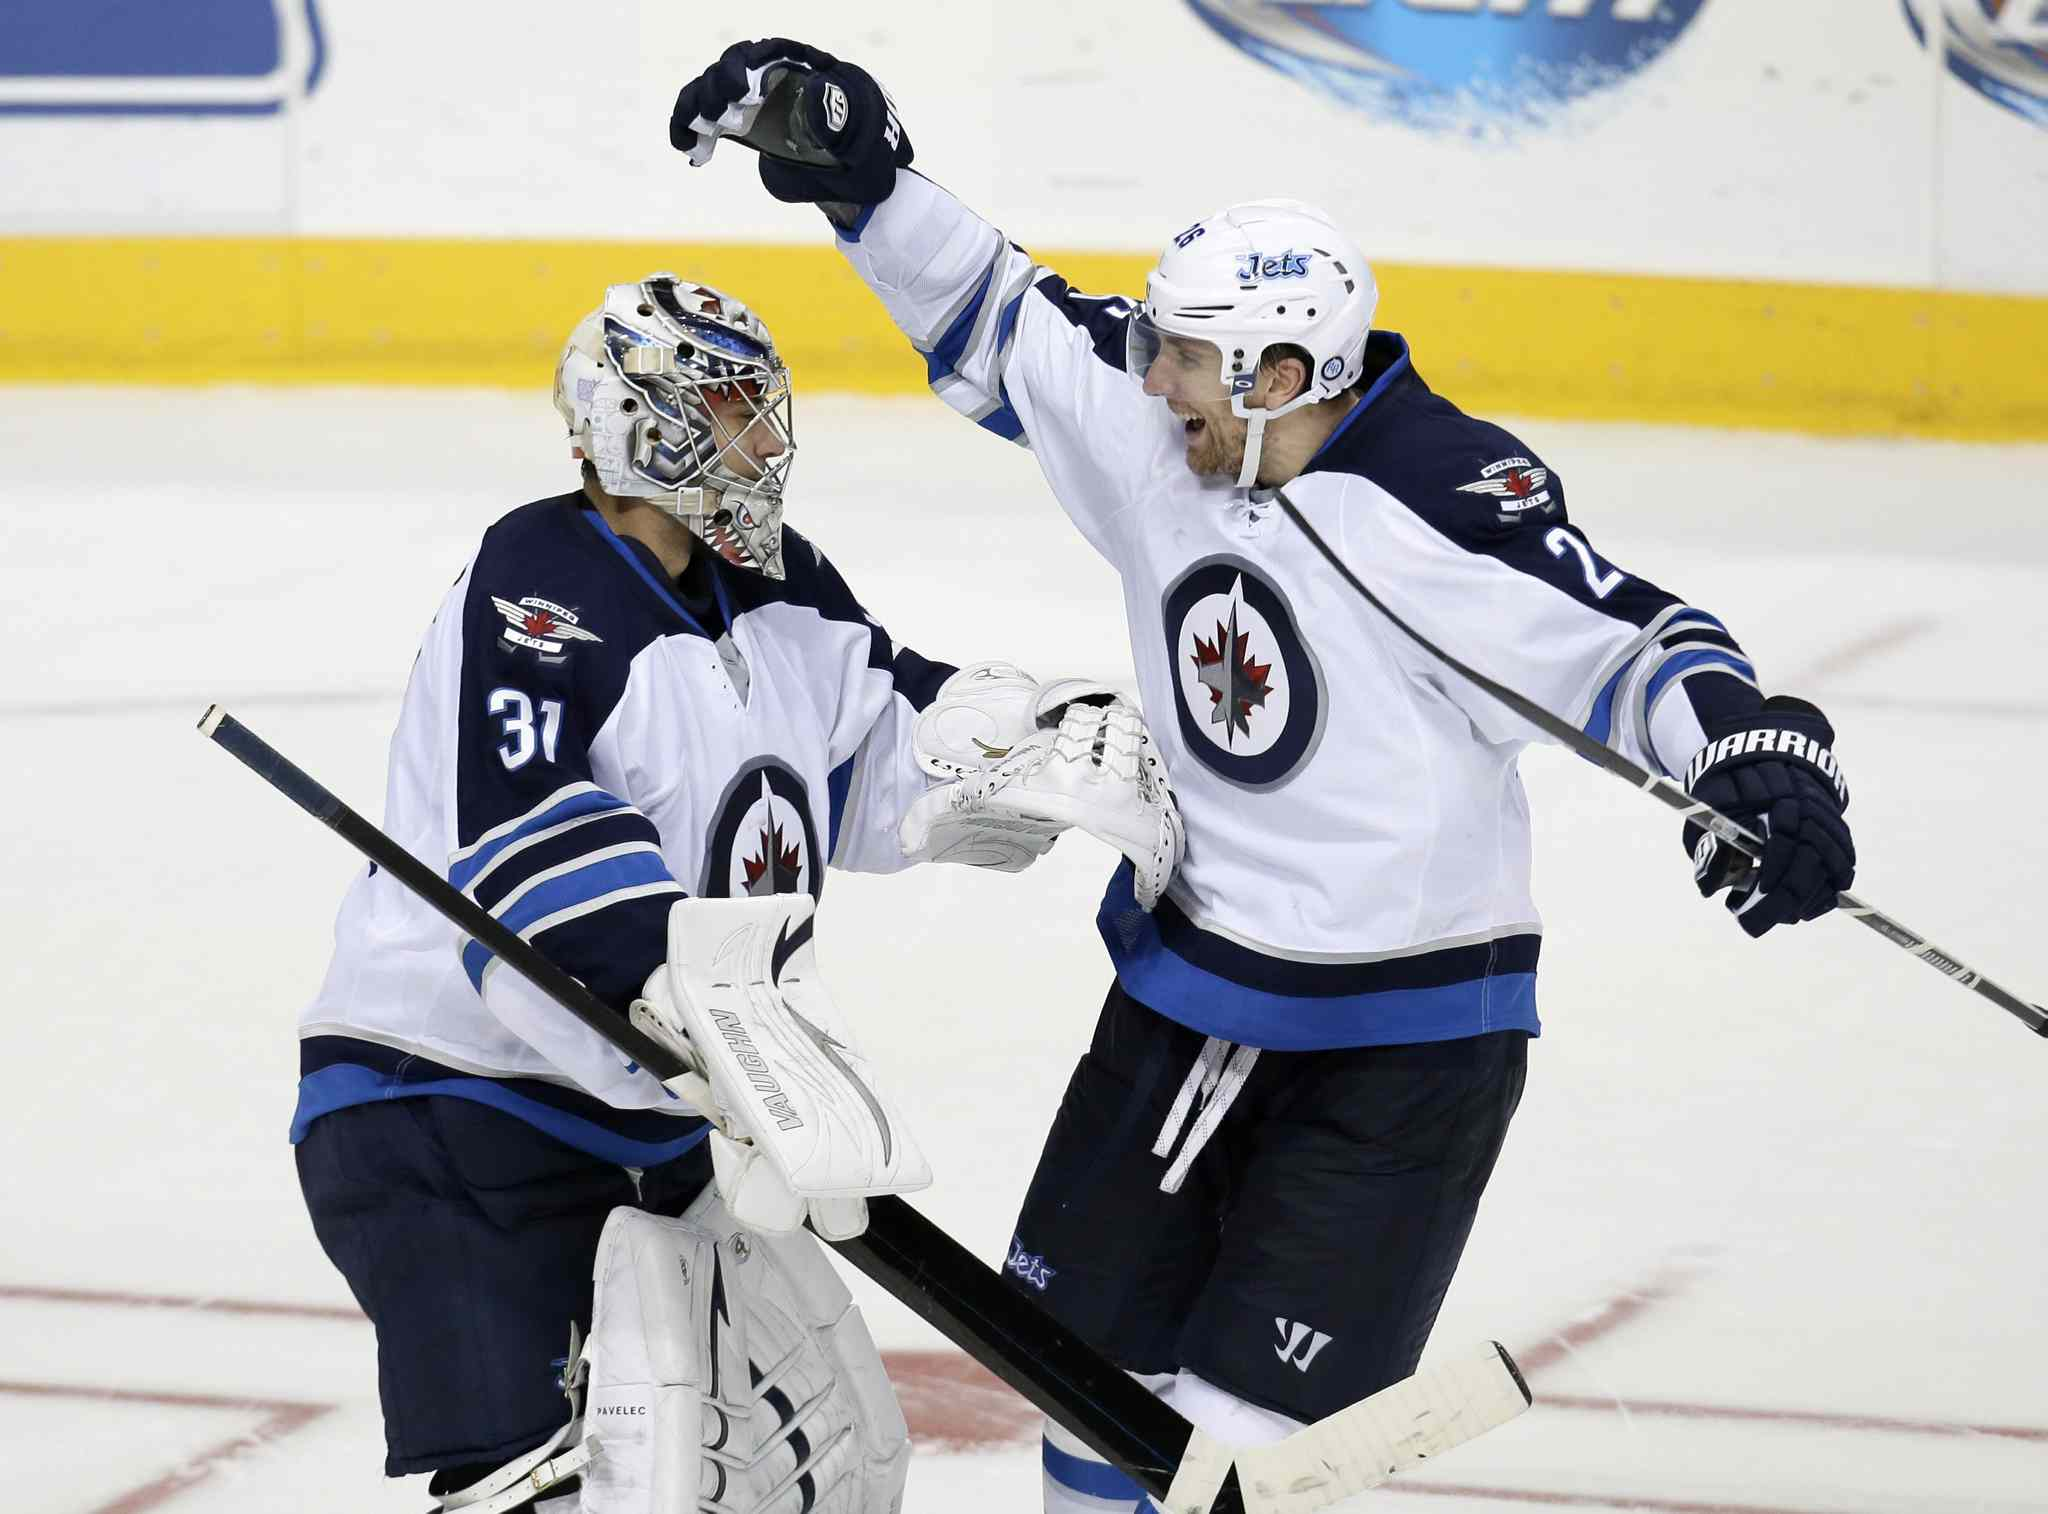 Ondrej Pavelec celebrates with Blake Wheeler after a shootout.